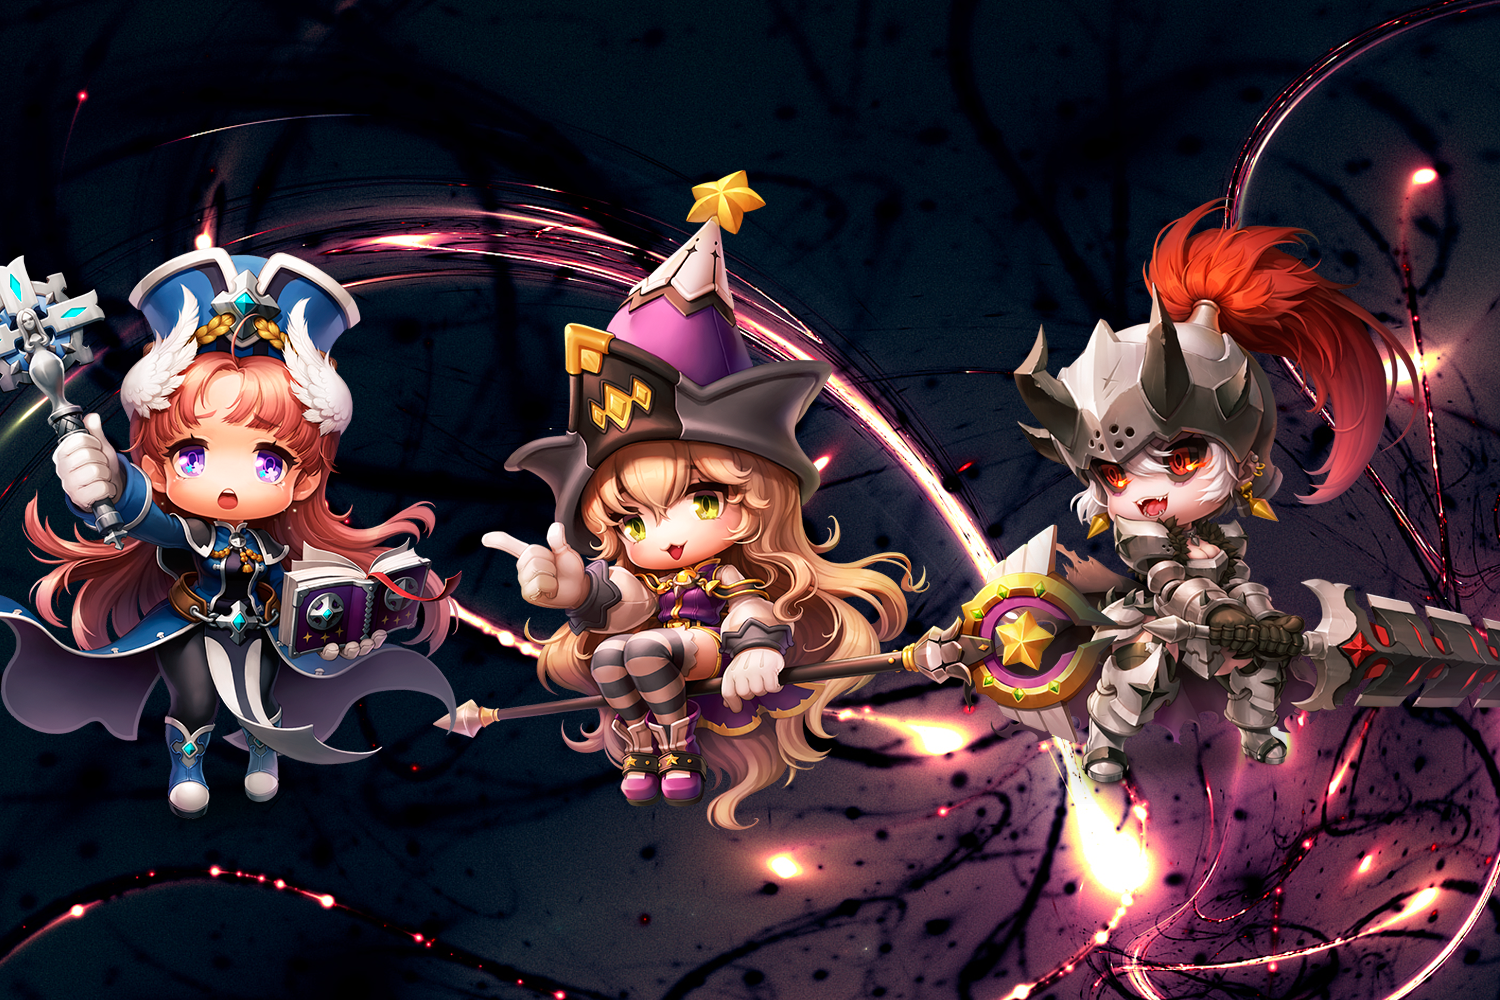 Maplestory 2 Preist Wizard Berserker Wallpaper By 77silentcrow On Deviantart